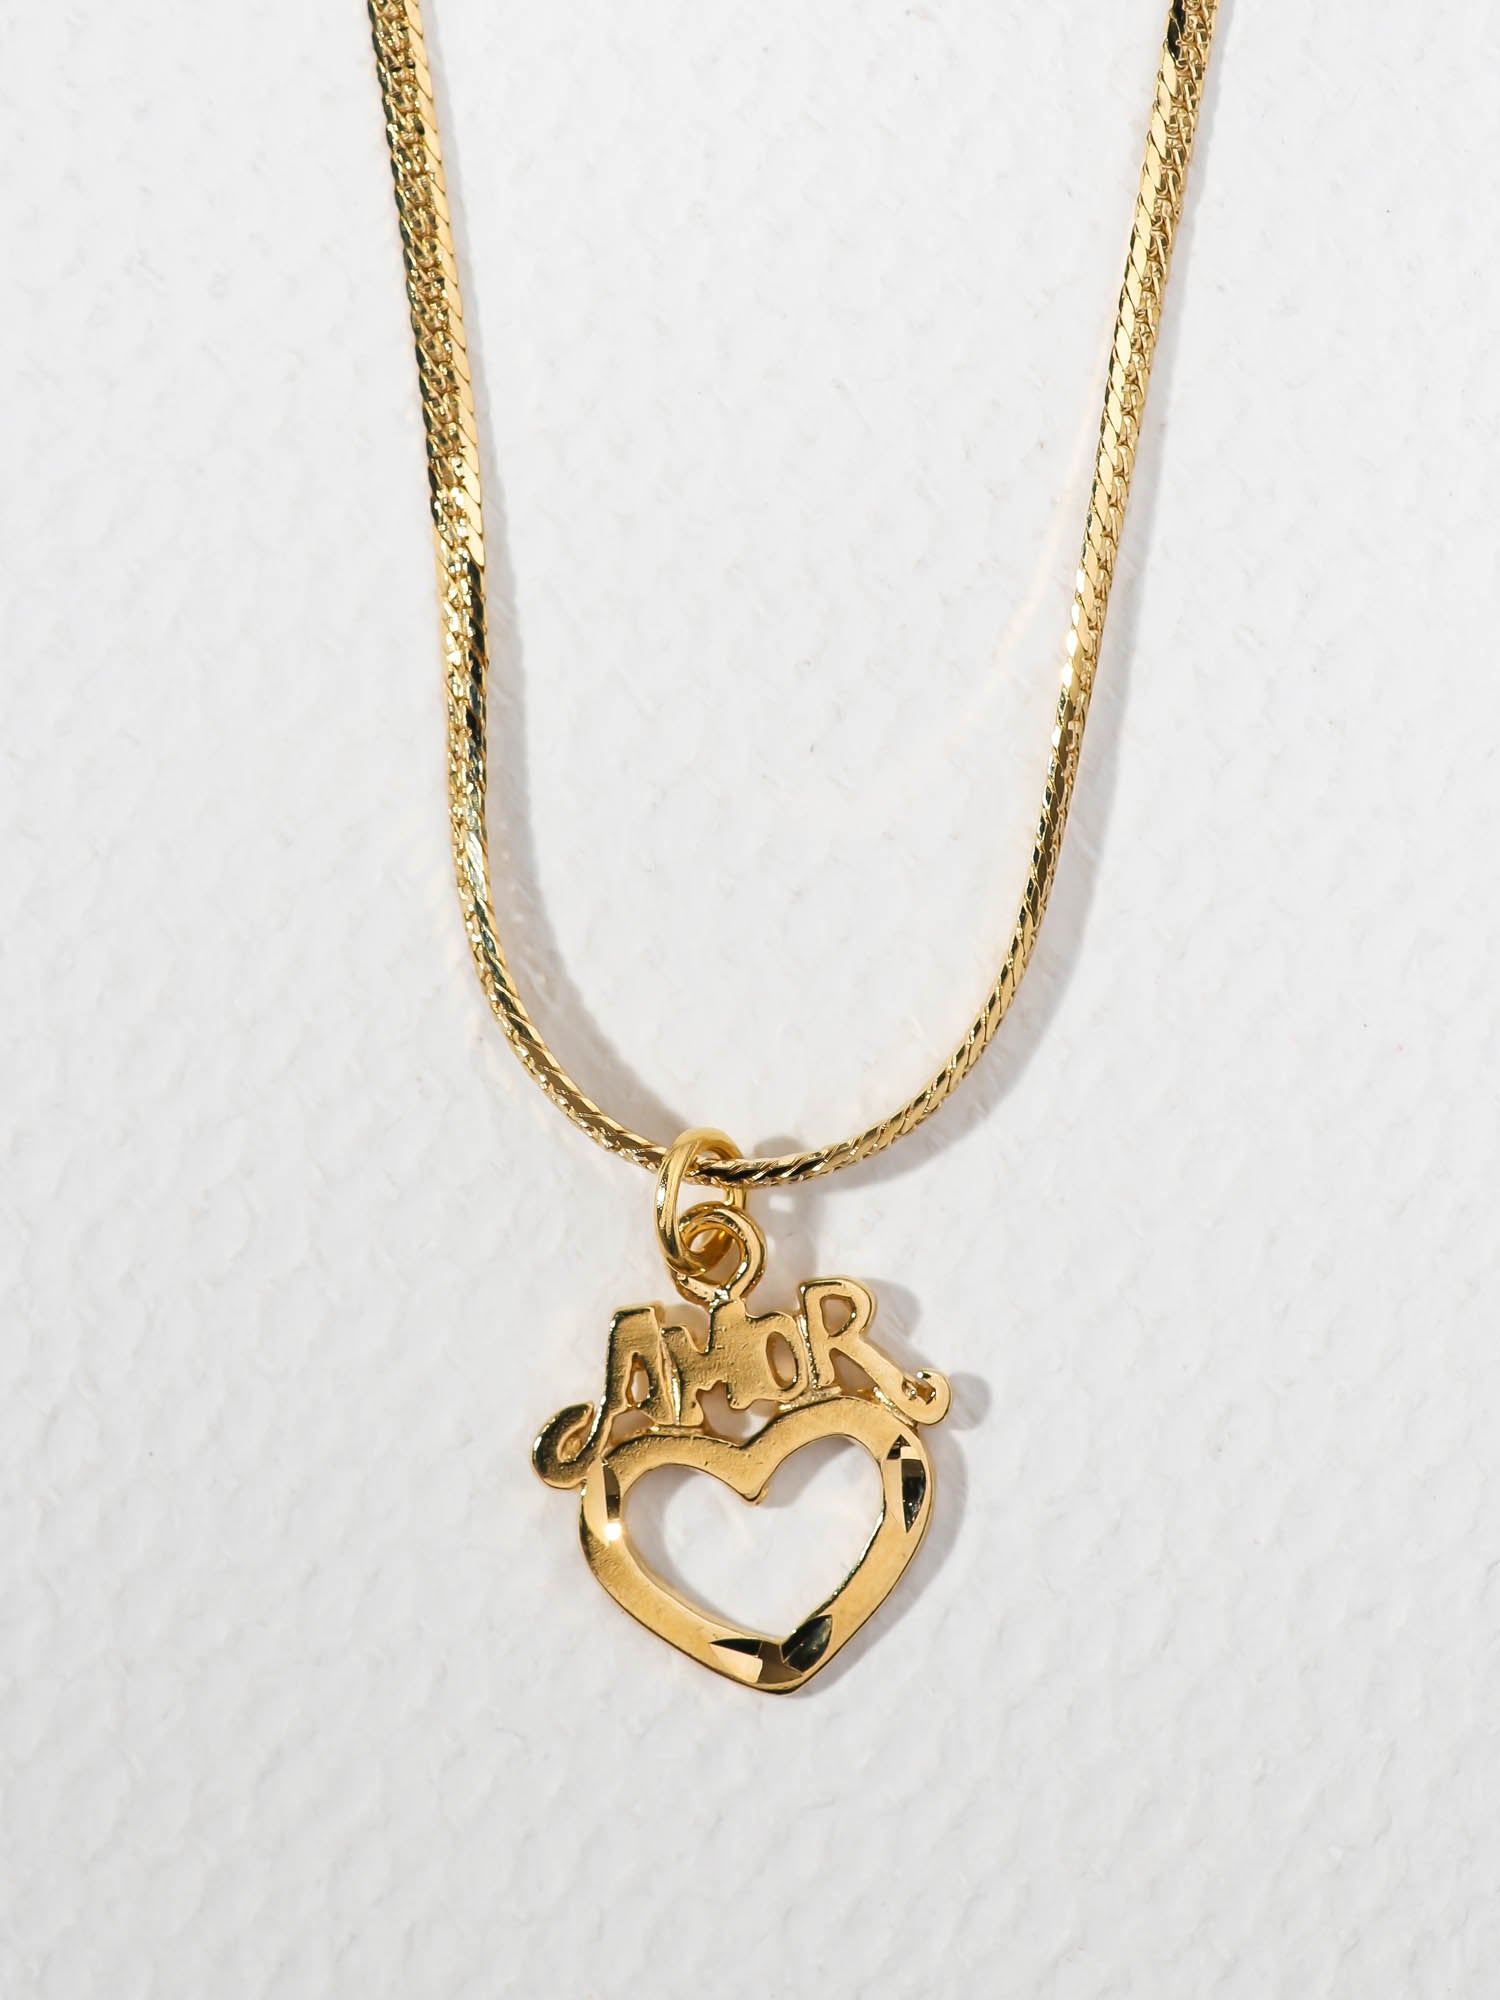 The Amor Heart Necklace